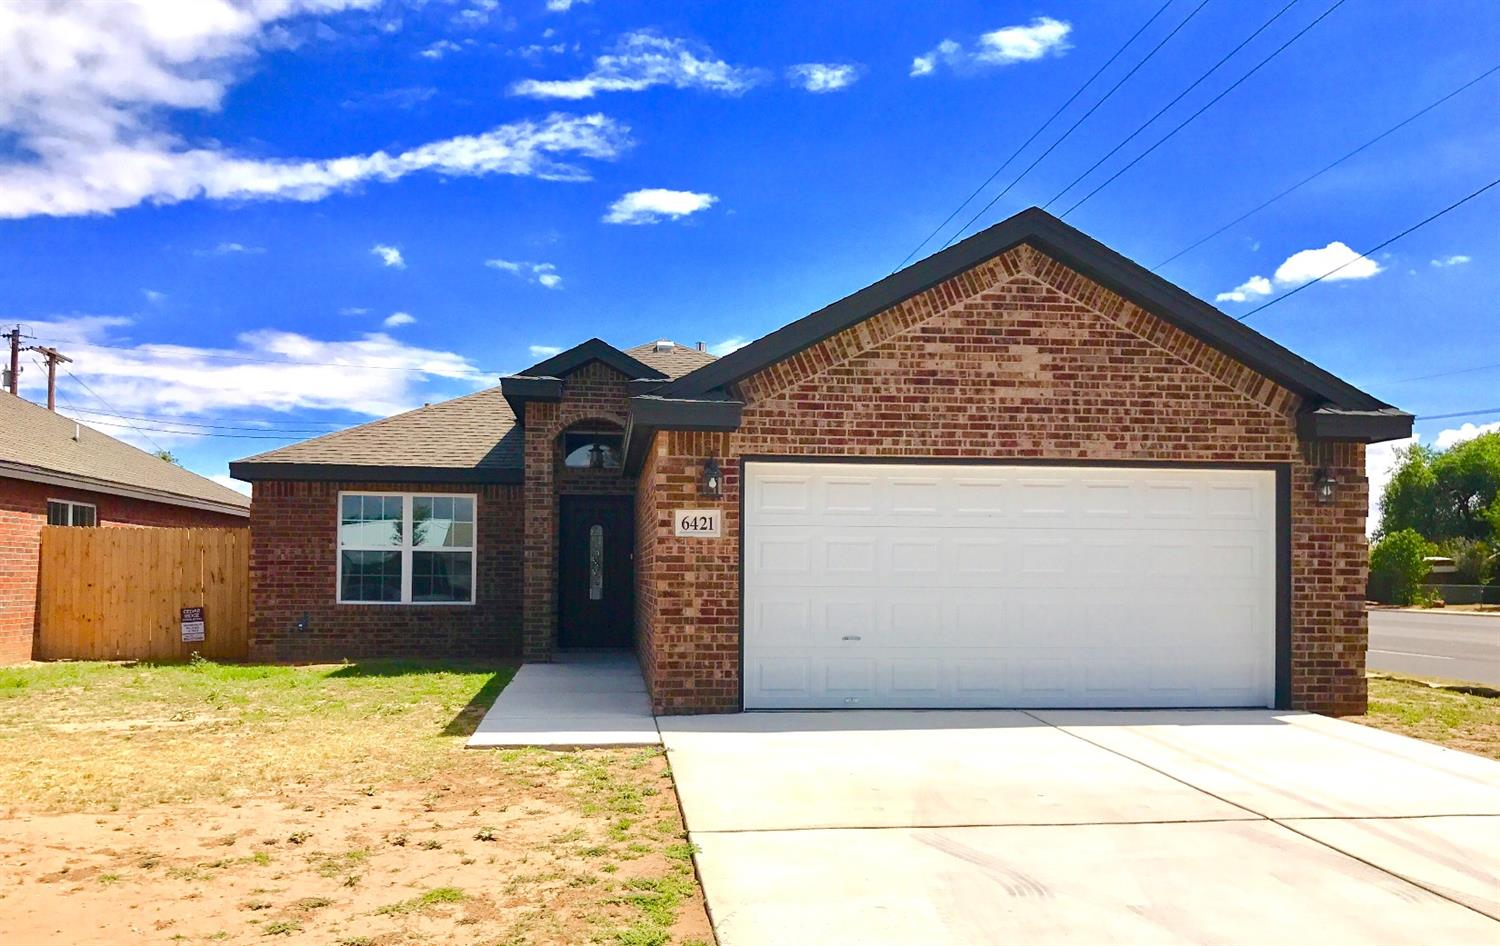 Photo of 6421 23rd  Lubbock  TX